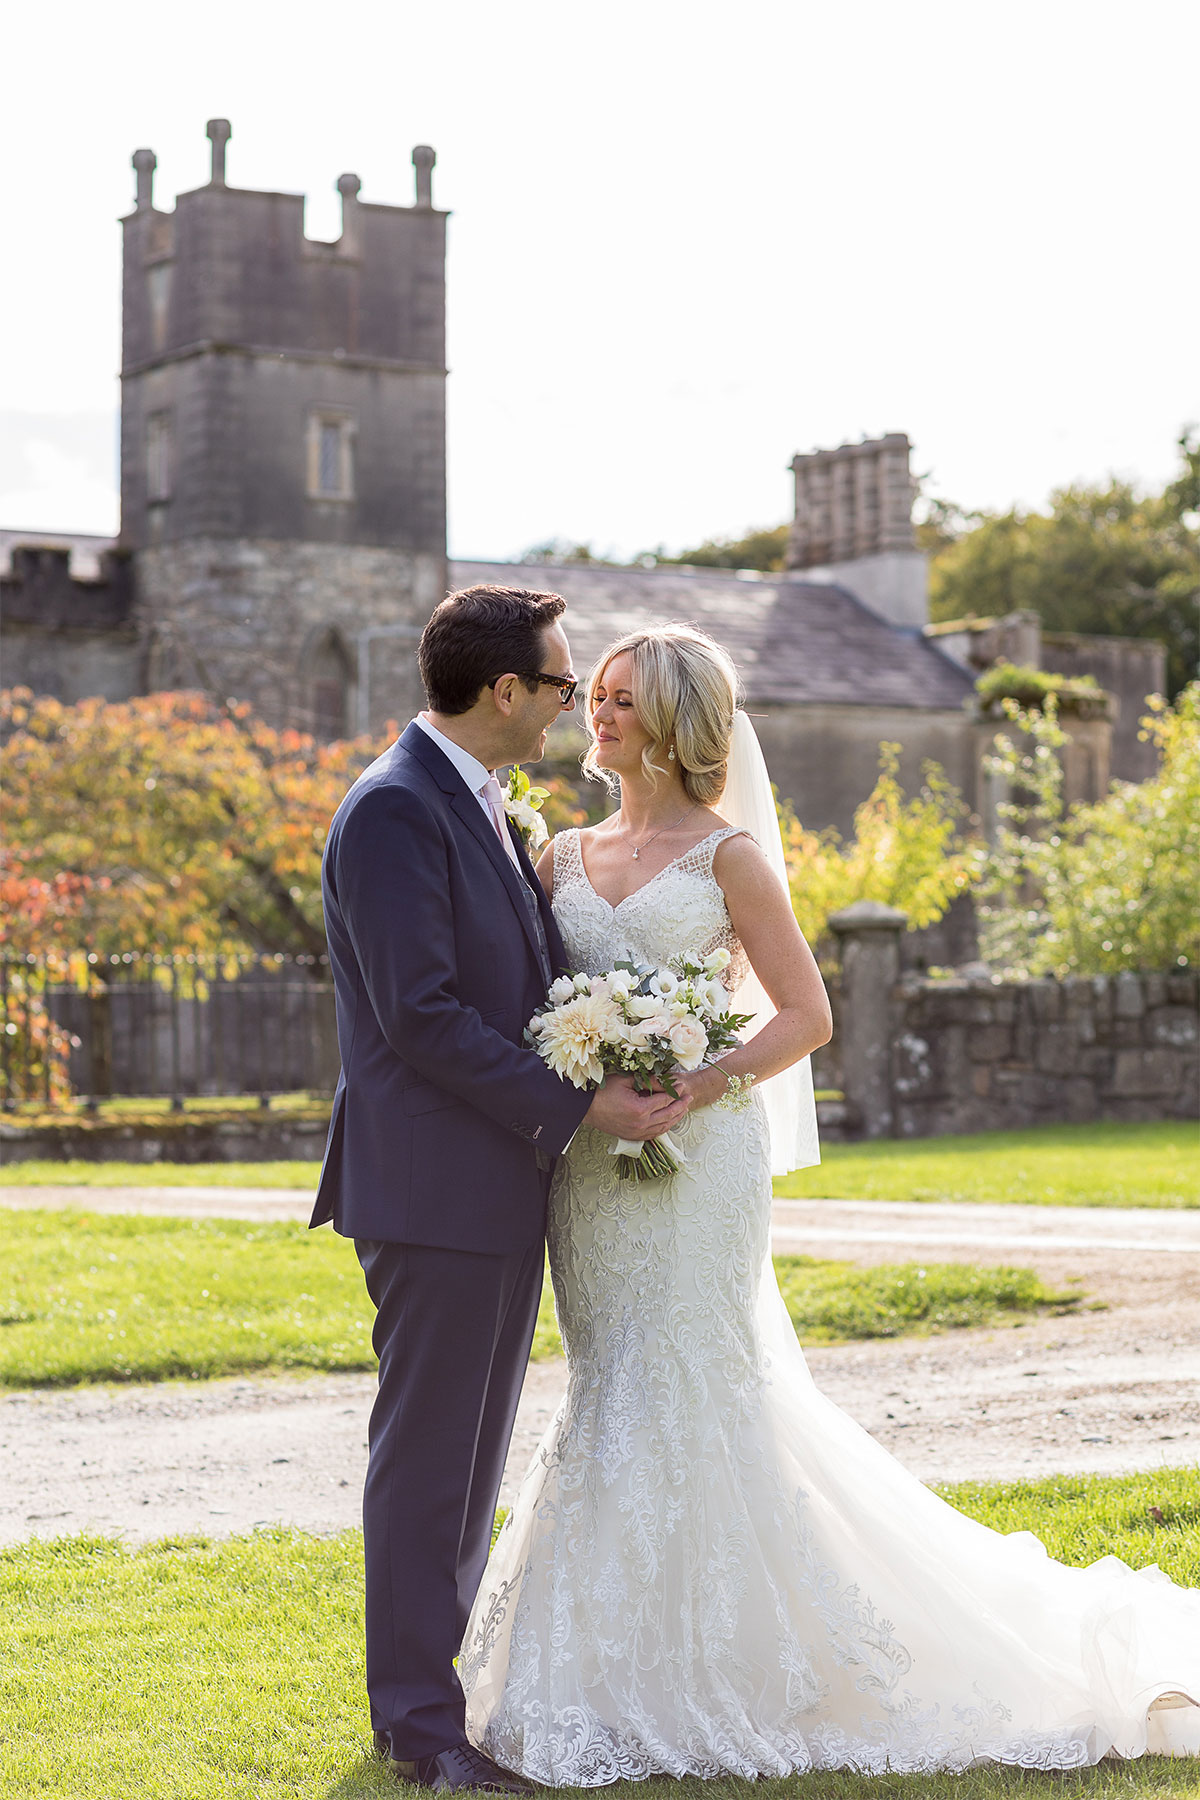 An Elegant Country Wedding Weekend At An Irish Castle